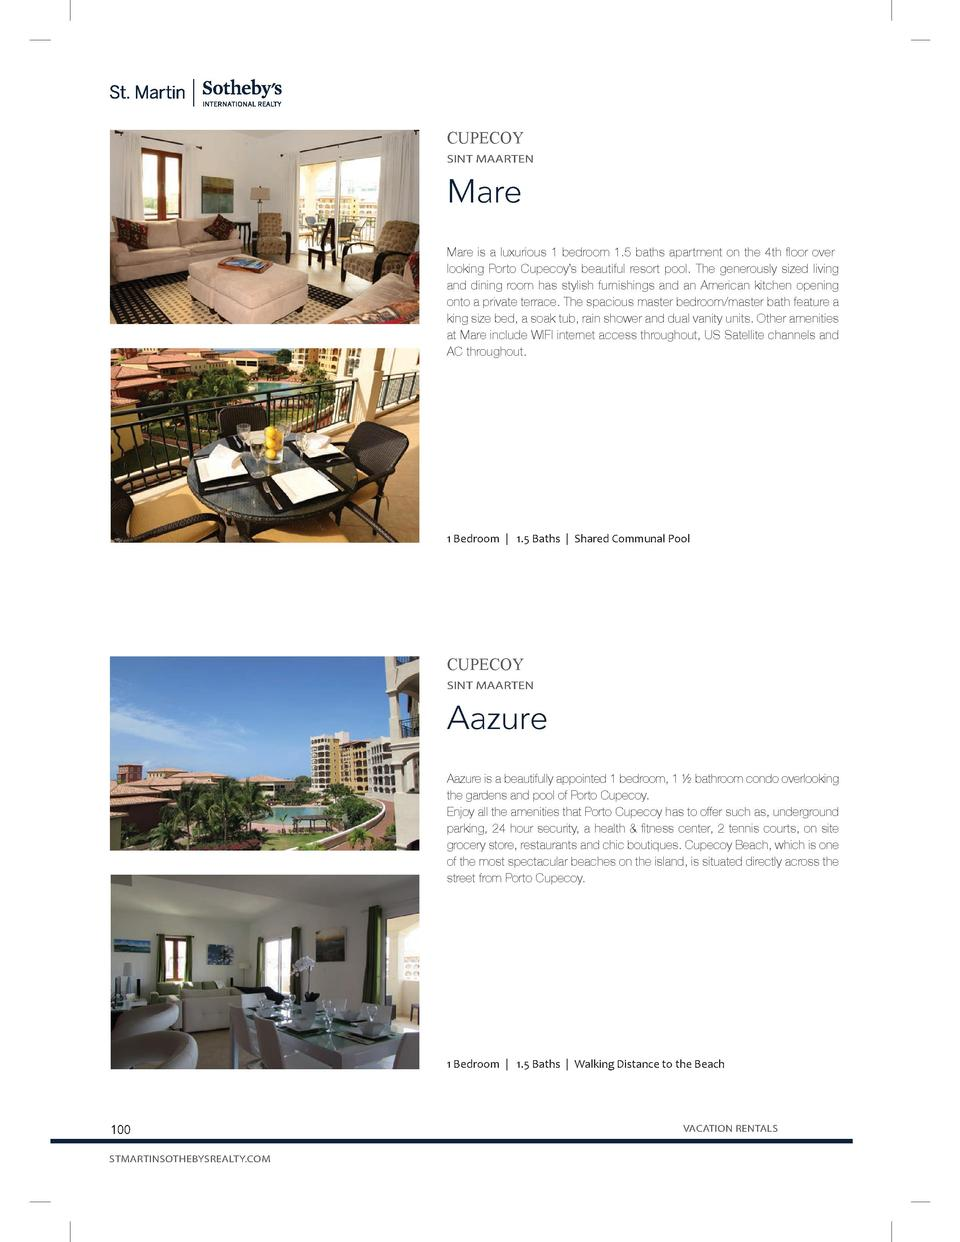 CUPECOY SINT MAARTEN  Mare Mare is a luxurious 1 bedroom 1.5 baths apartment on the 4th floor overlooking Porto Cupecoy   ...